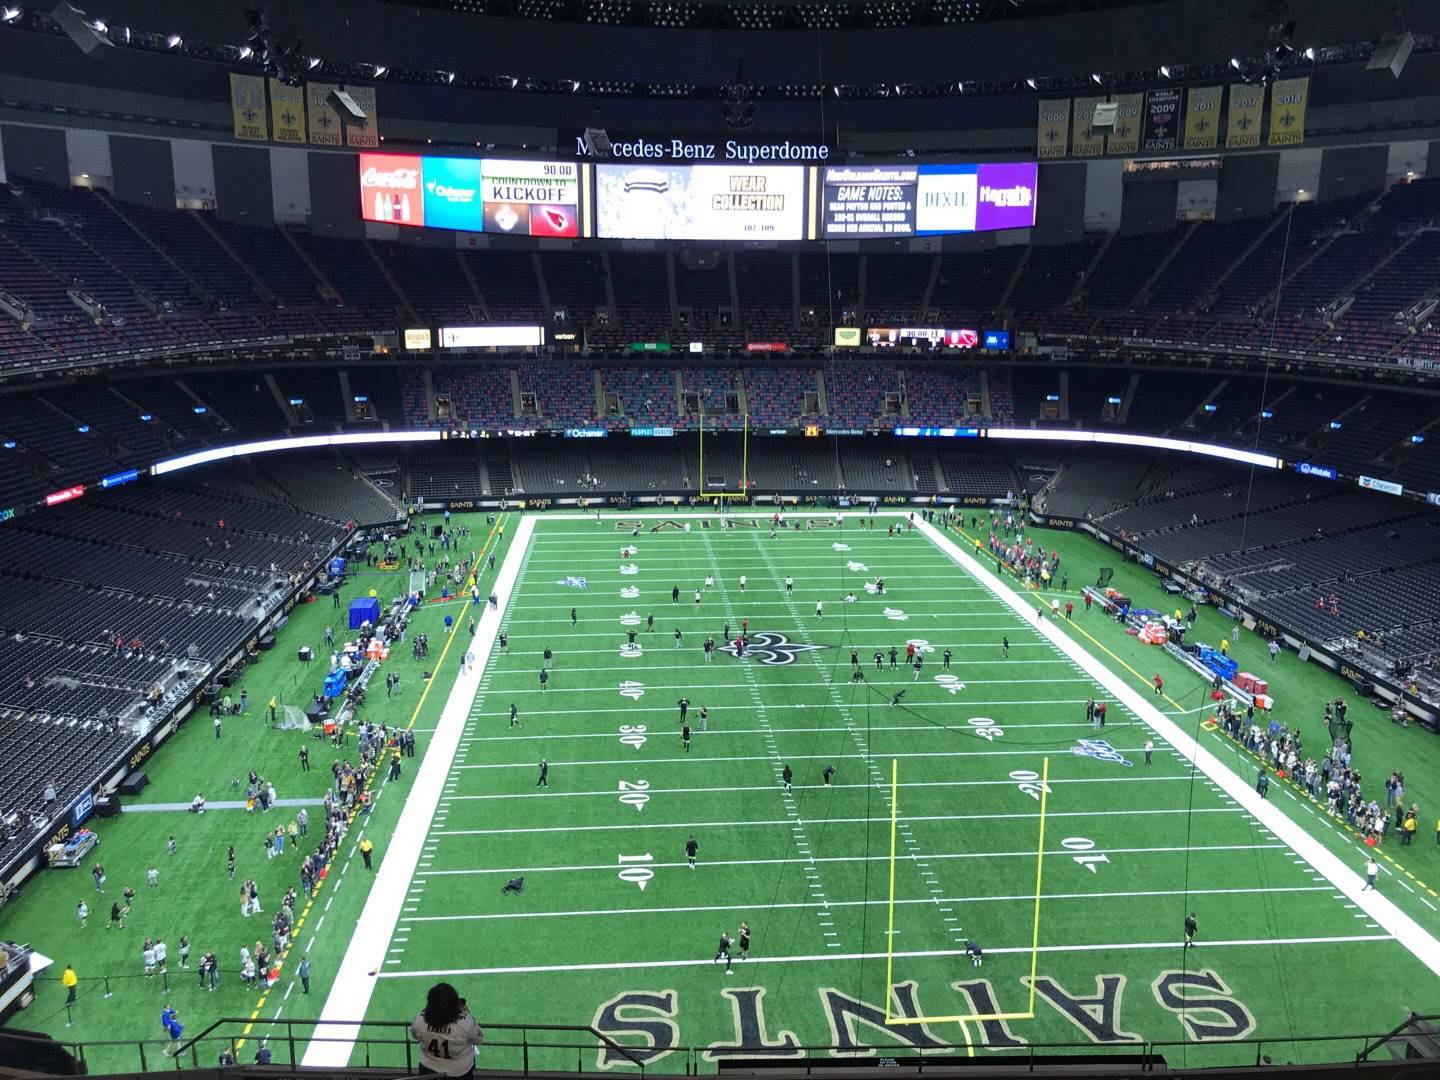 Mercedes-Benz Superdome Section 628 Row 14 Seat 16